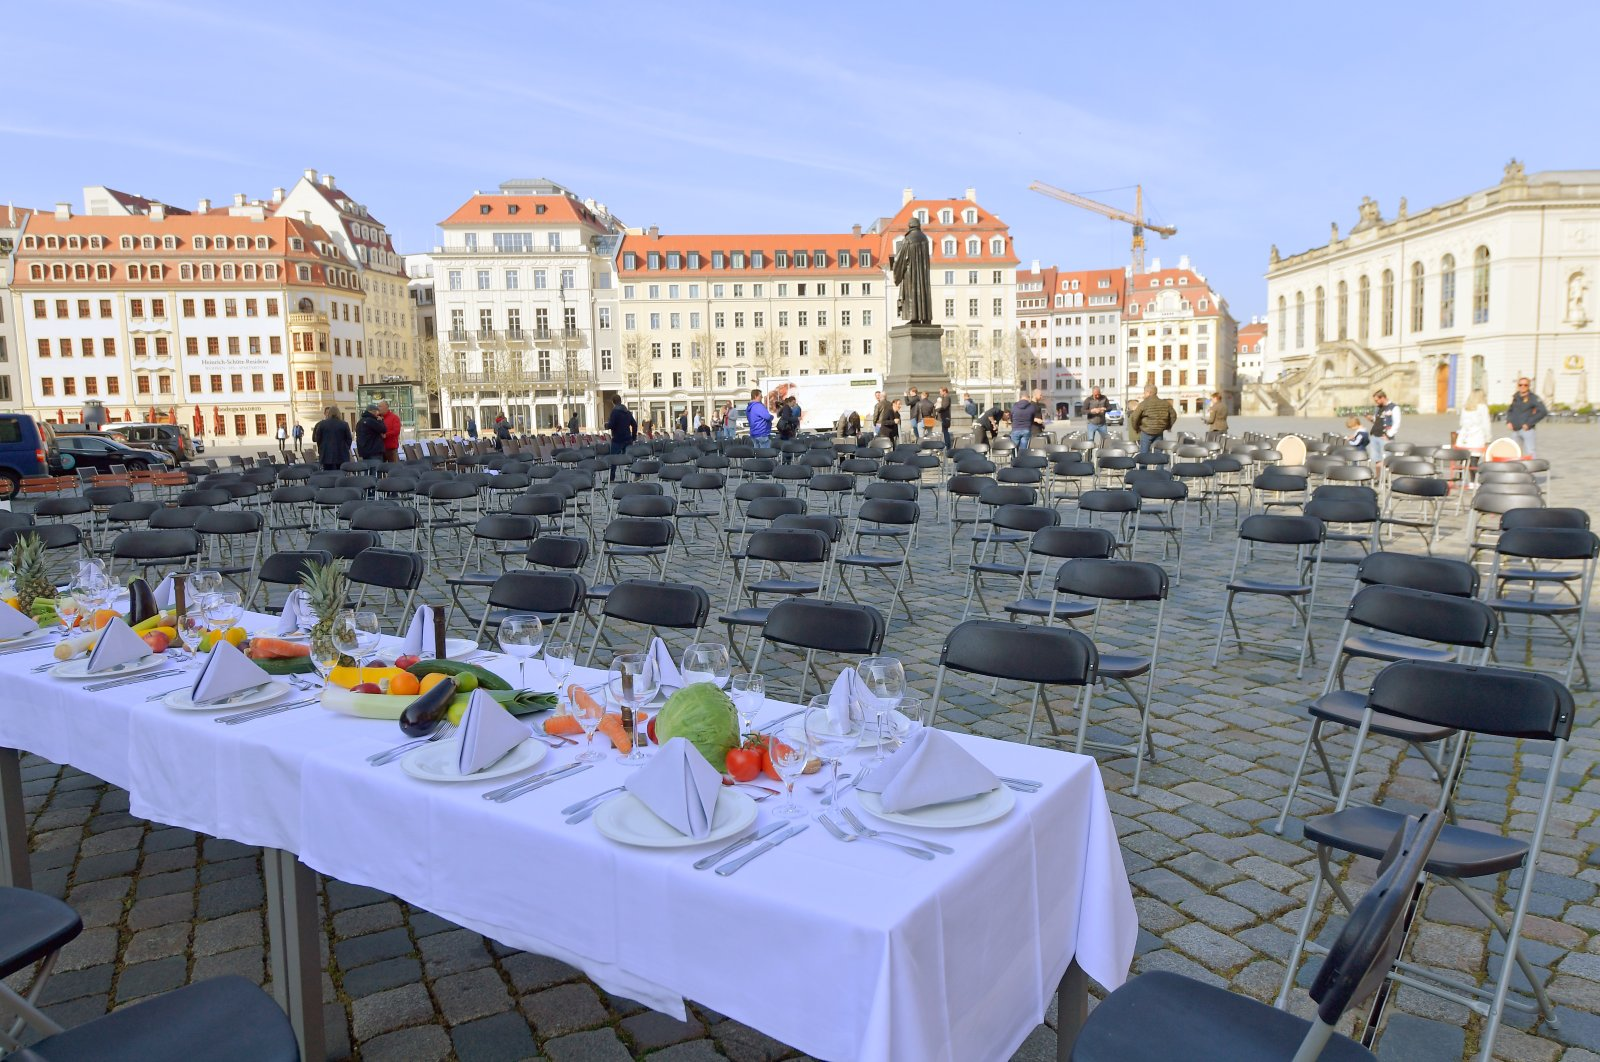 Empty chairs and decorated tables are set up in Neumarkt square to call attention to the difficult situation of hotel and restaurant owners as the spread of the coronavirus continues, Dresden, Germany, April 17, 2020. (Reuters Photo)